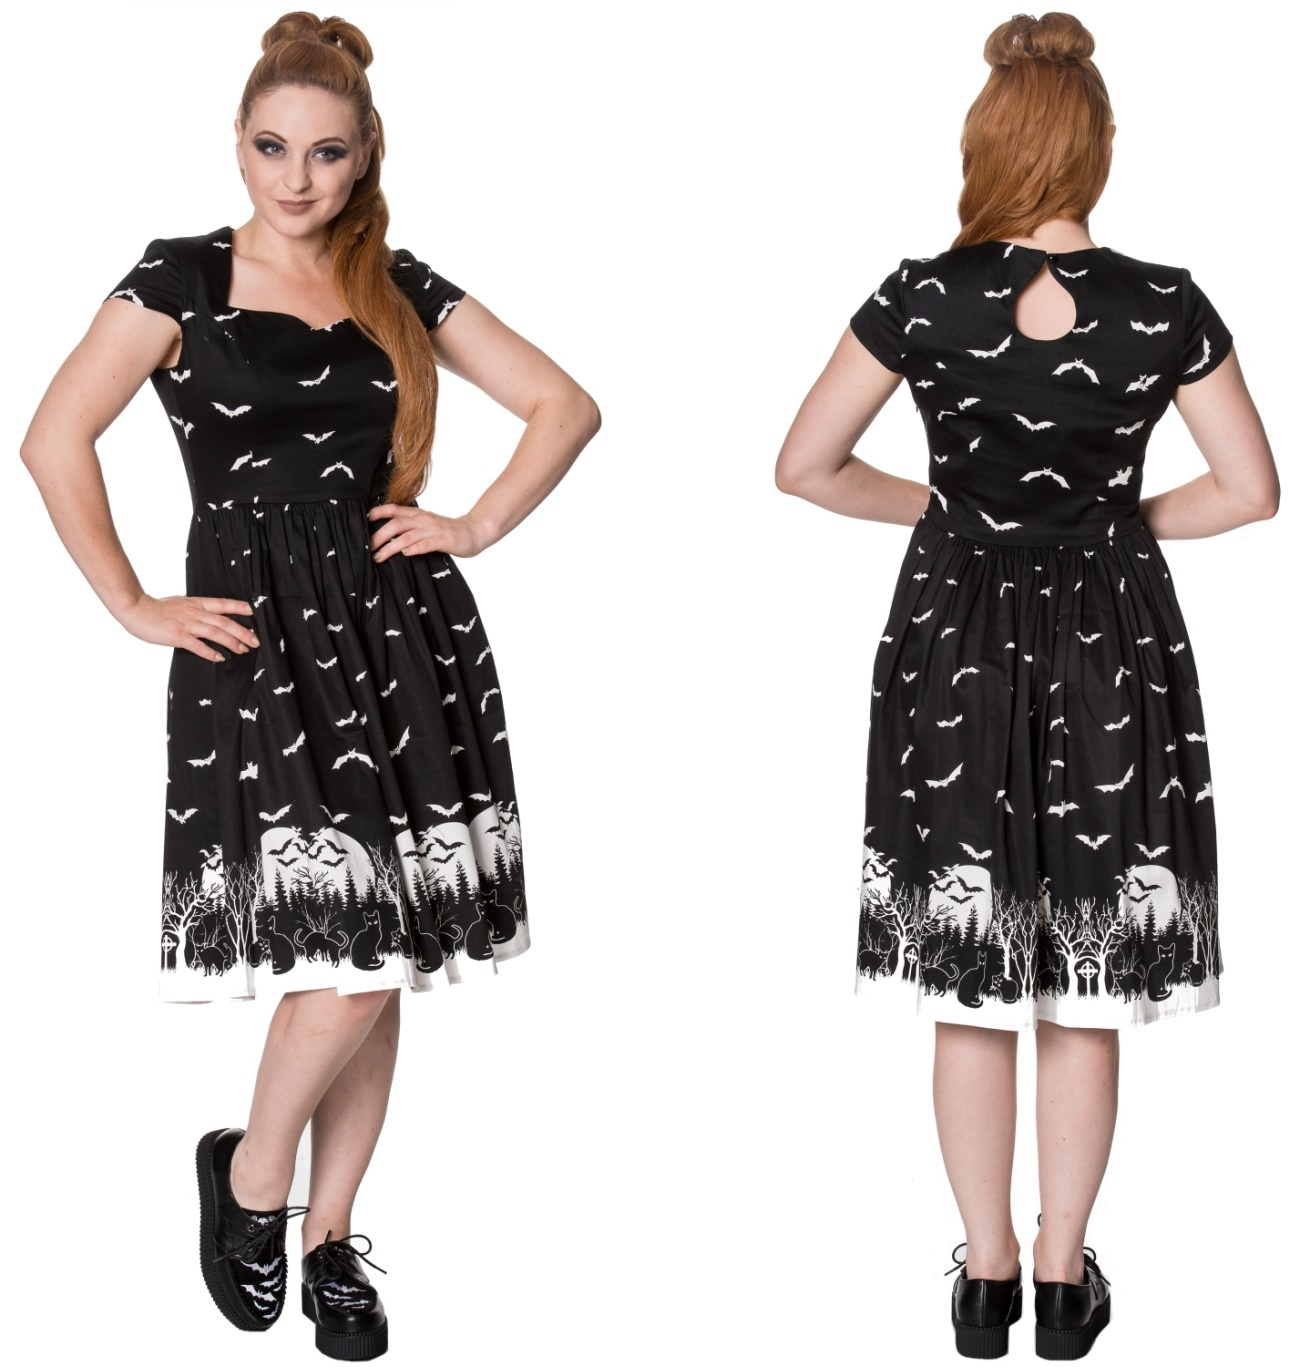 436508b8bb12 Rockabilly Kleid Fledermaus Banned - Banned bei Gothic Onlineshop -  www.the-clash.de